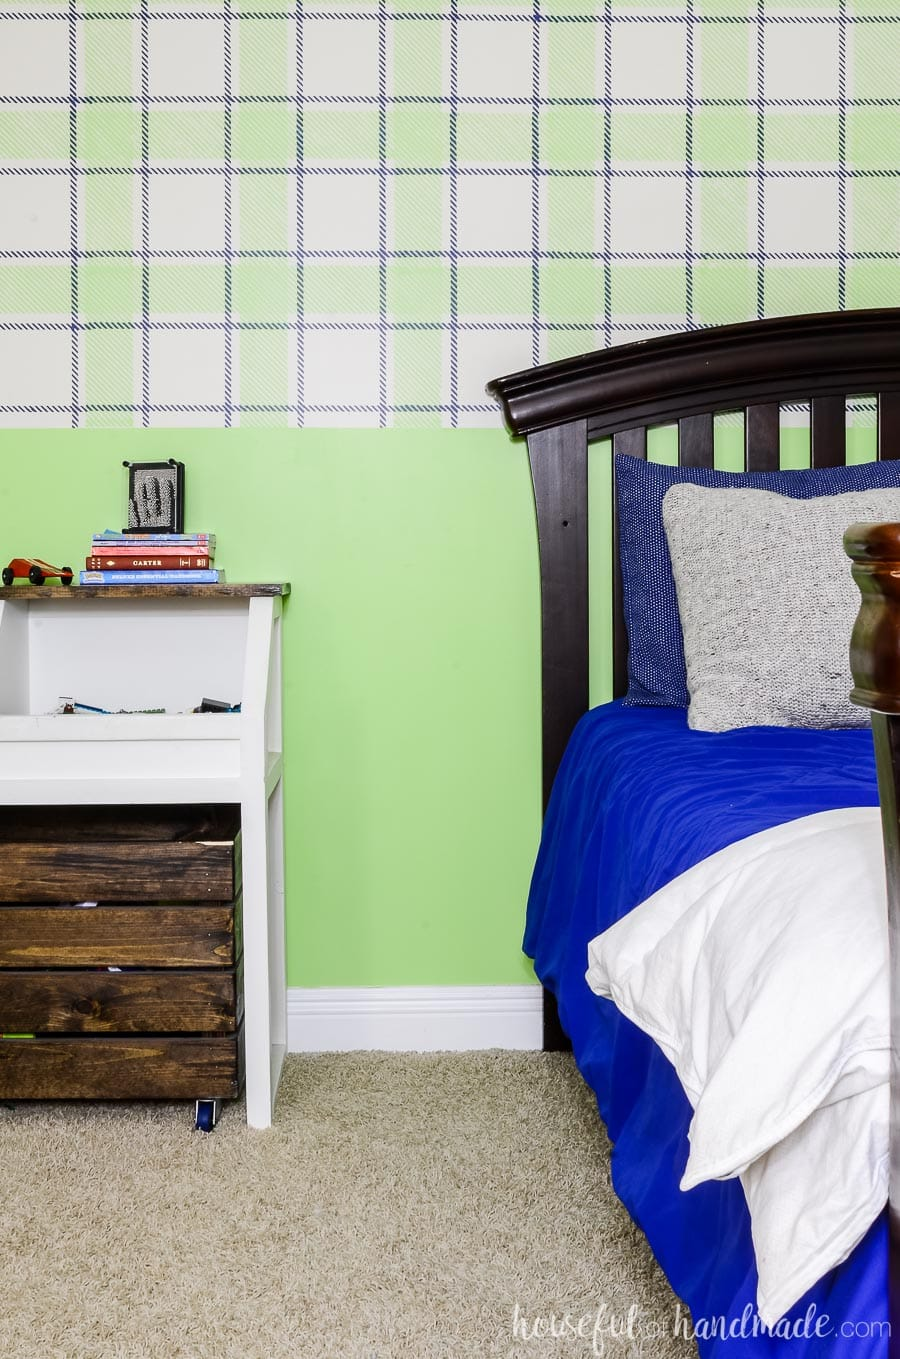 Boys bedroom with blue & green plaid wall design. Rustic toy storage console and arched headboard bed frame in front of wall.